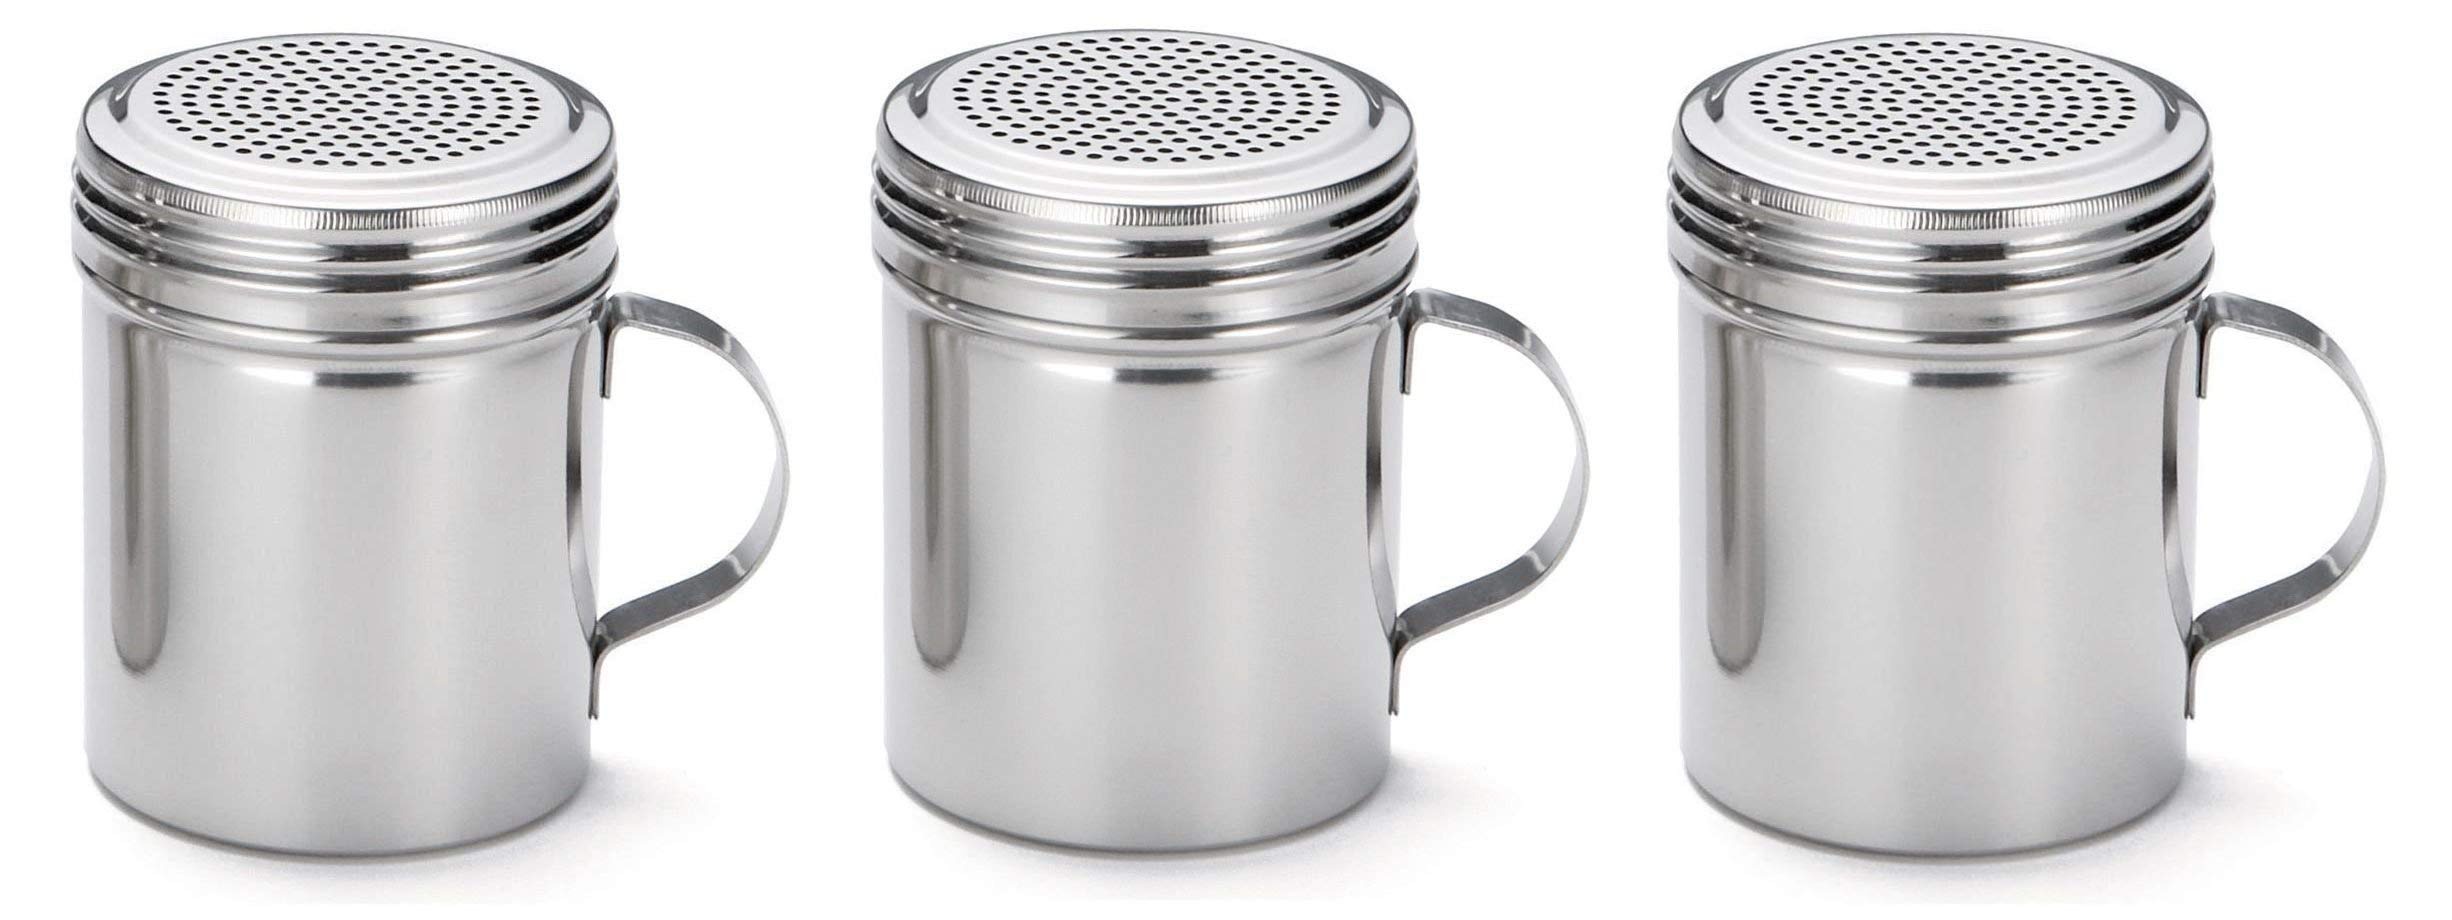 TableCraft (H159H) 10-Ounce Stainless Steel Dredge (Thrее Рack)